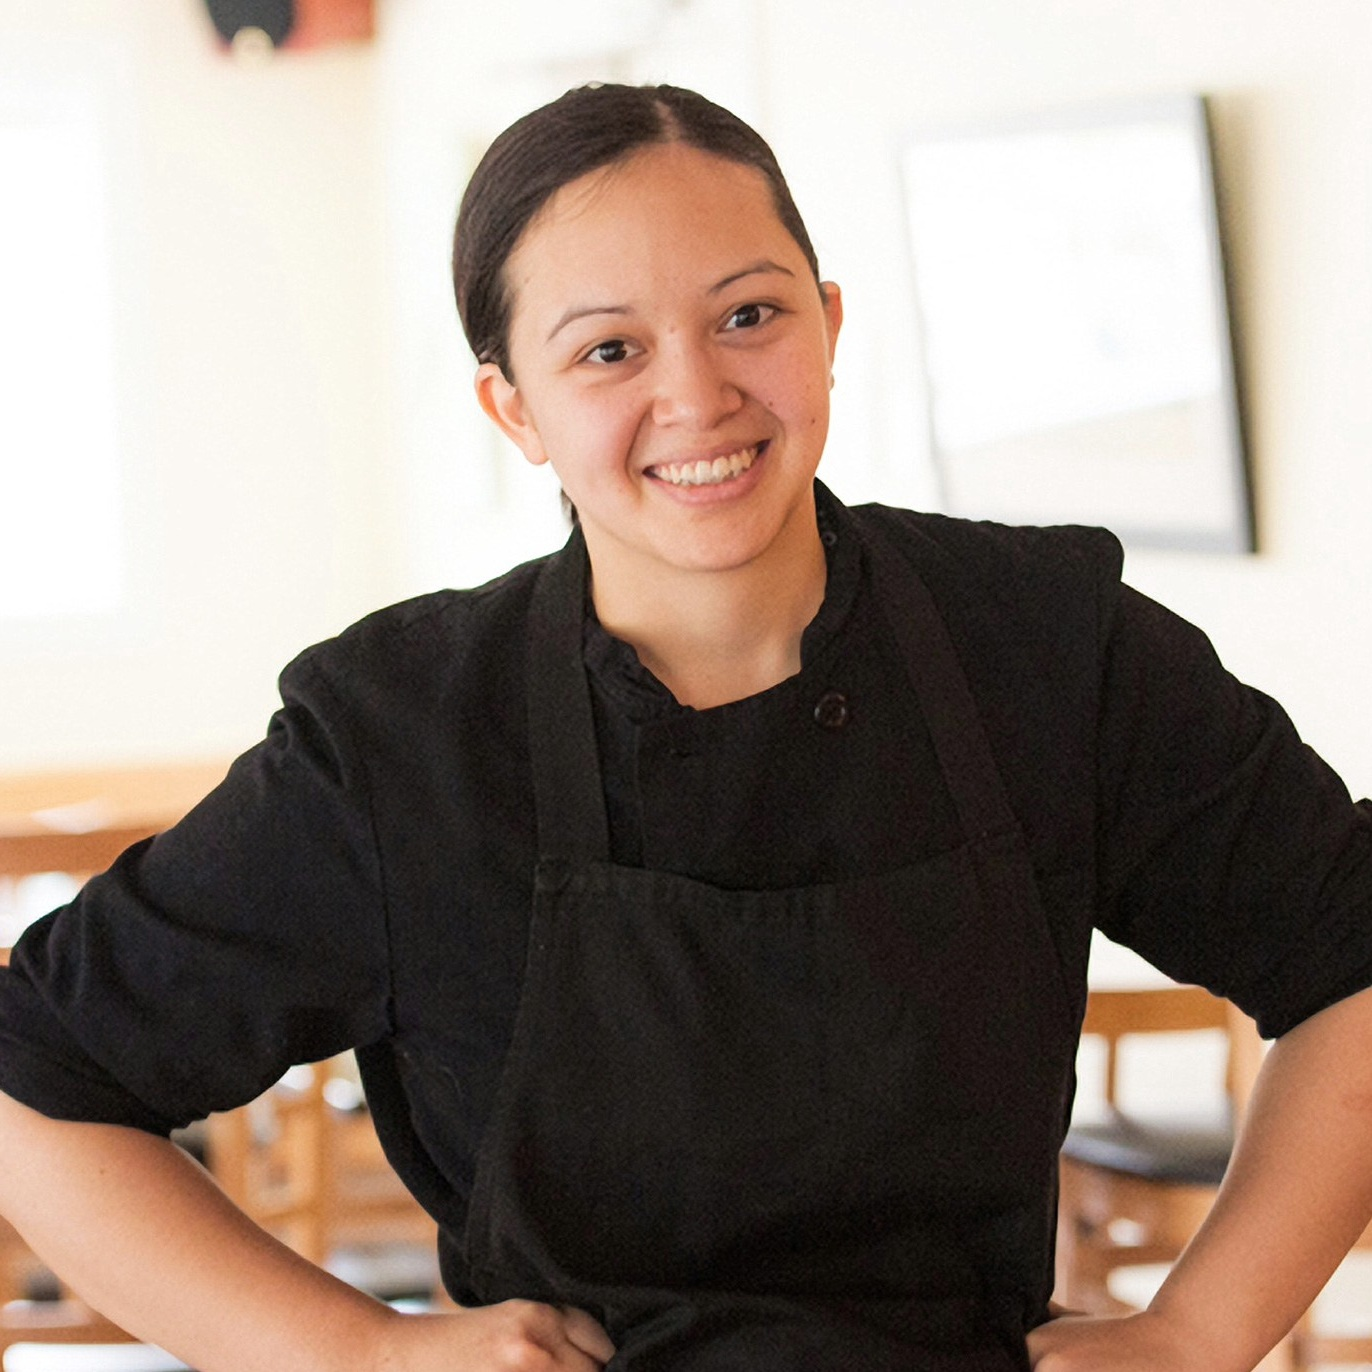 Cara Stadler - Lio • Bao Bao • Tao Yuan4-time James Beard Award Semi-Finalist for Rising Star Chef of the Year (Northeast) and Food & Wine Magazine's Best Chef 2014 Nominee